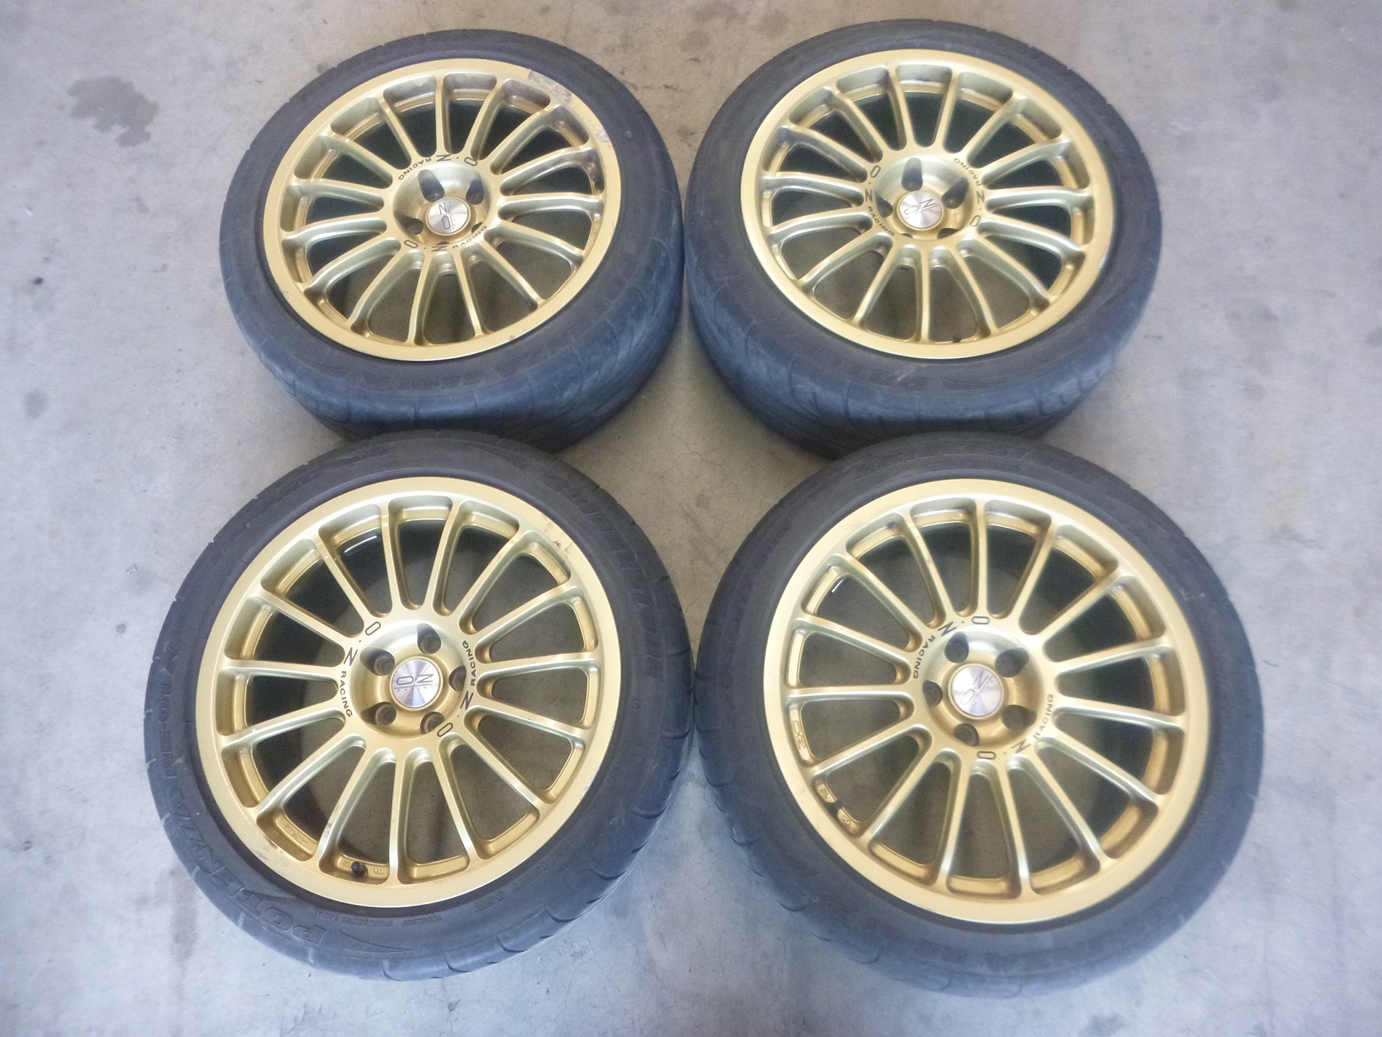 17-x-8-43-5x100-Subaru-Impreza-WRX-GDB-STi-OZ-Racing-Gold-Wheels-Rims-JDM